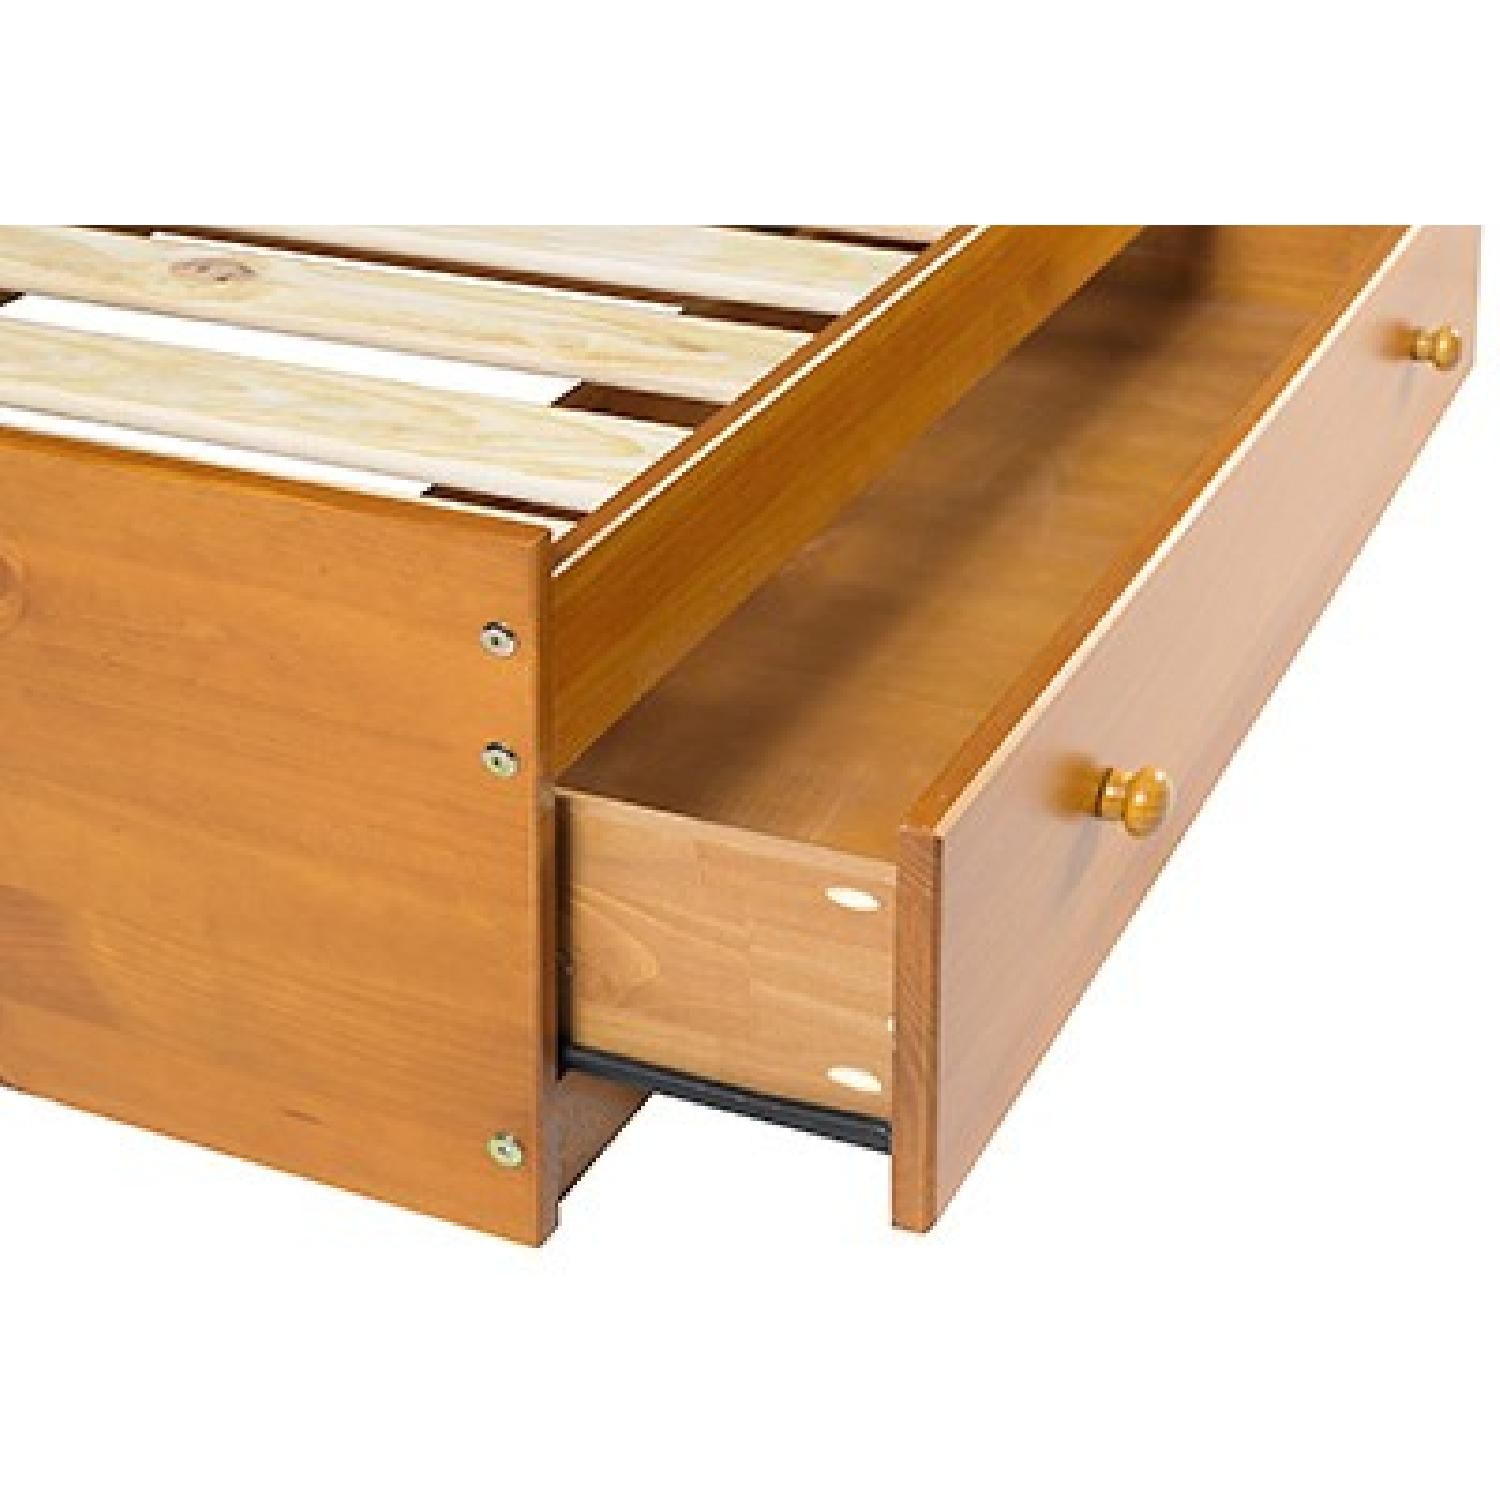 Full Size Solid Wood Bed in Honey Pine w/ Storage Drawers - image-24